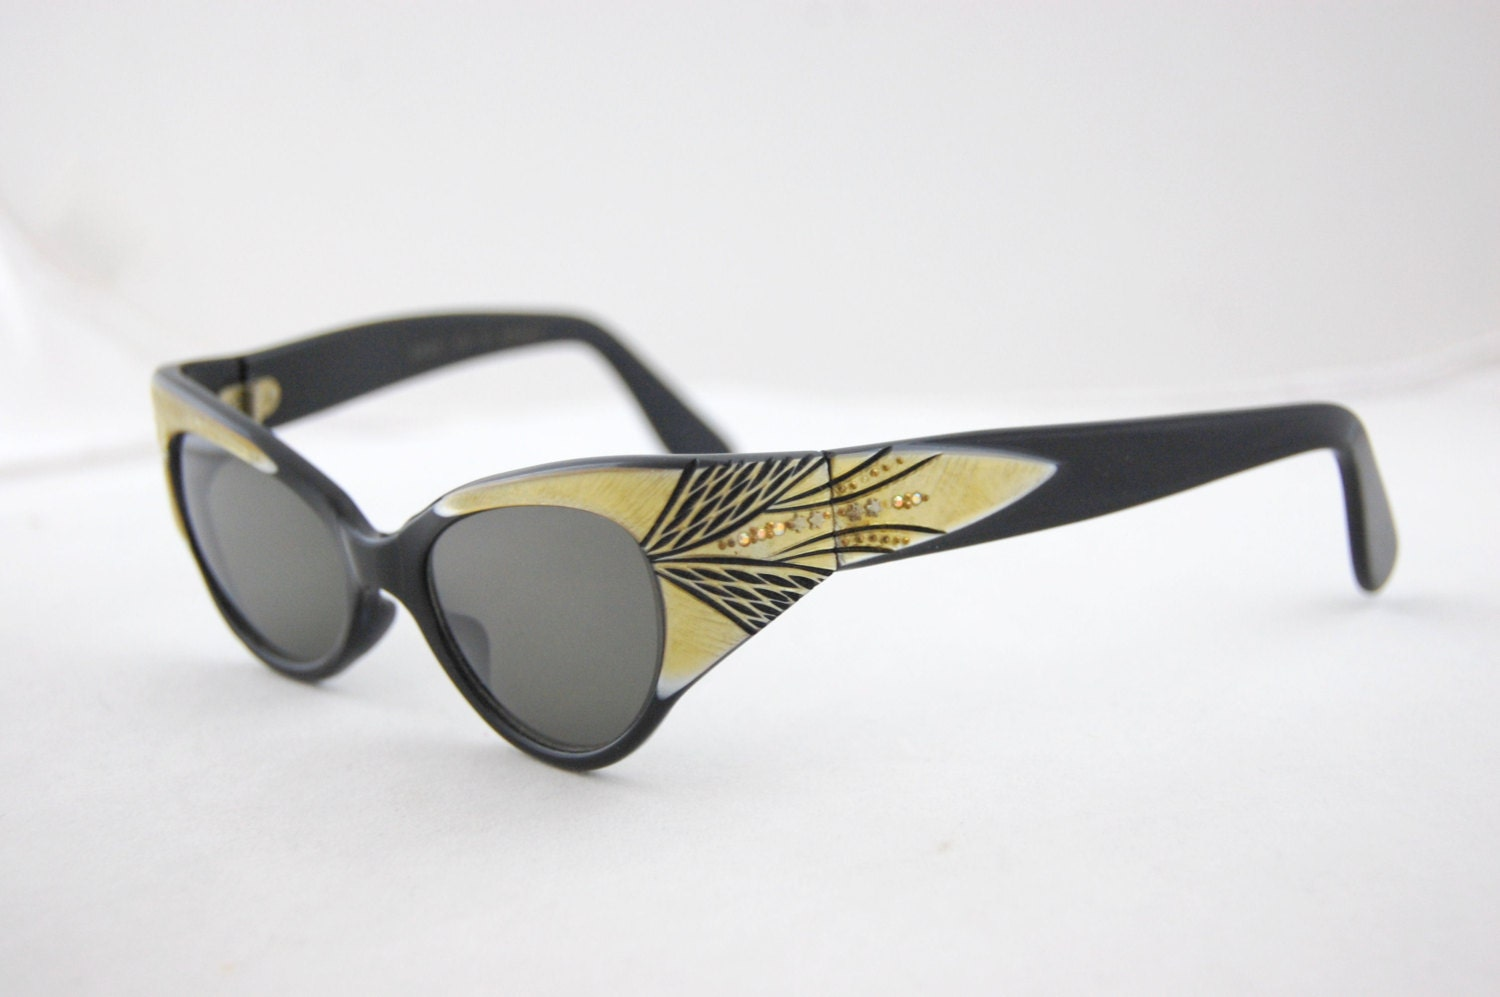 Black And Gold Eyeglass Frames : 50s Black and Gold Cateye Eyeglasses by FrocksnFrillsVintage